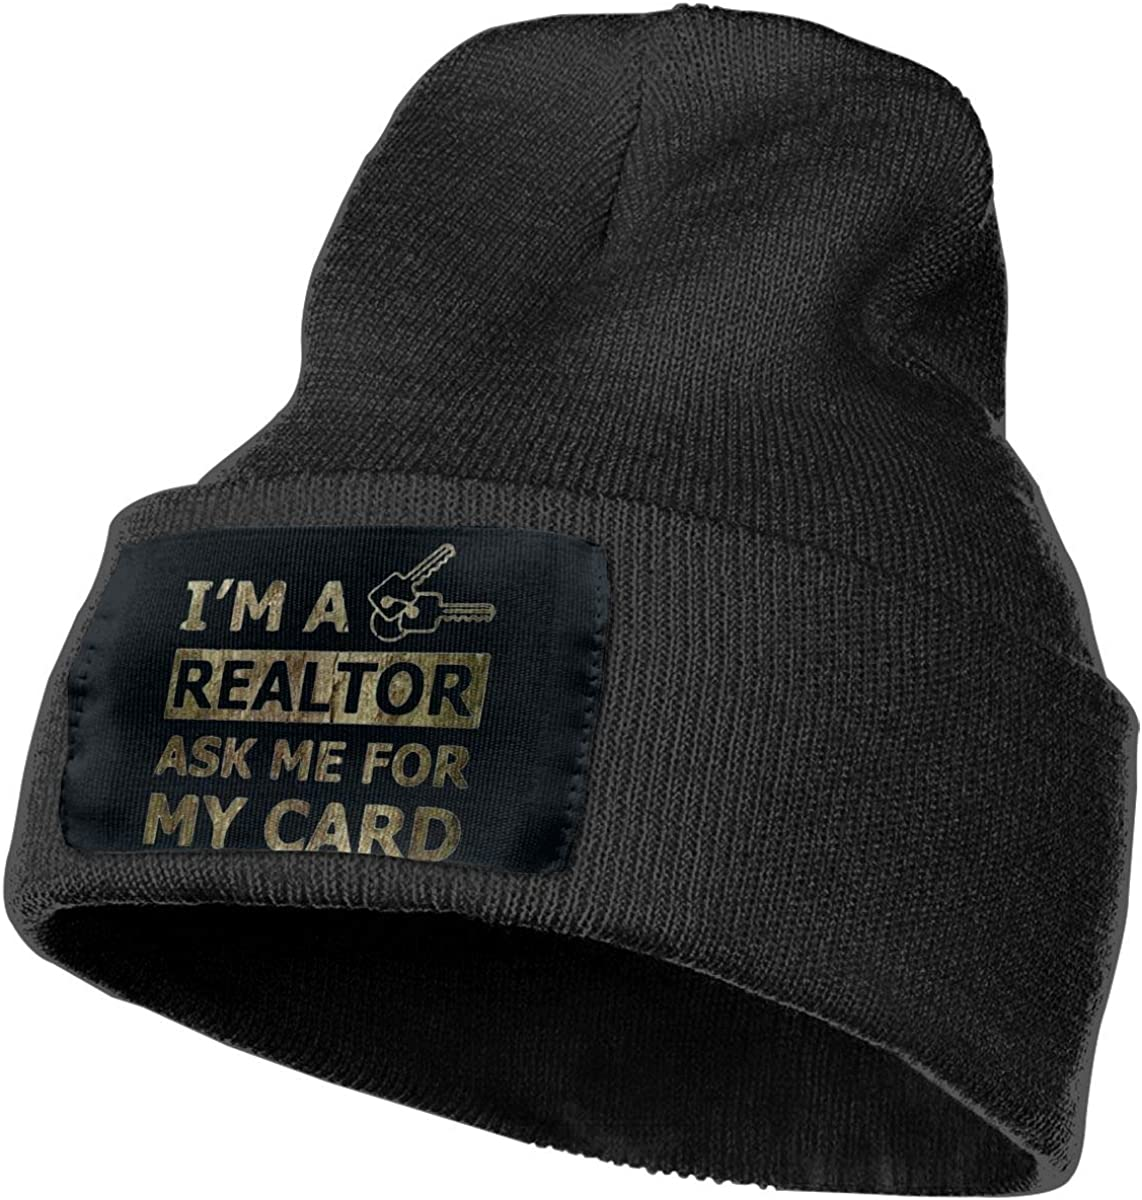 Real Estate Realtor Card Winter Warm Hats,Knit Slouchy Thick Skull Cap Black